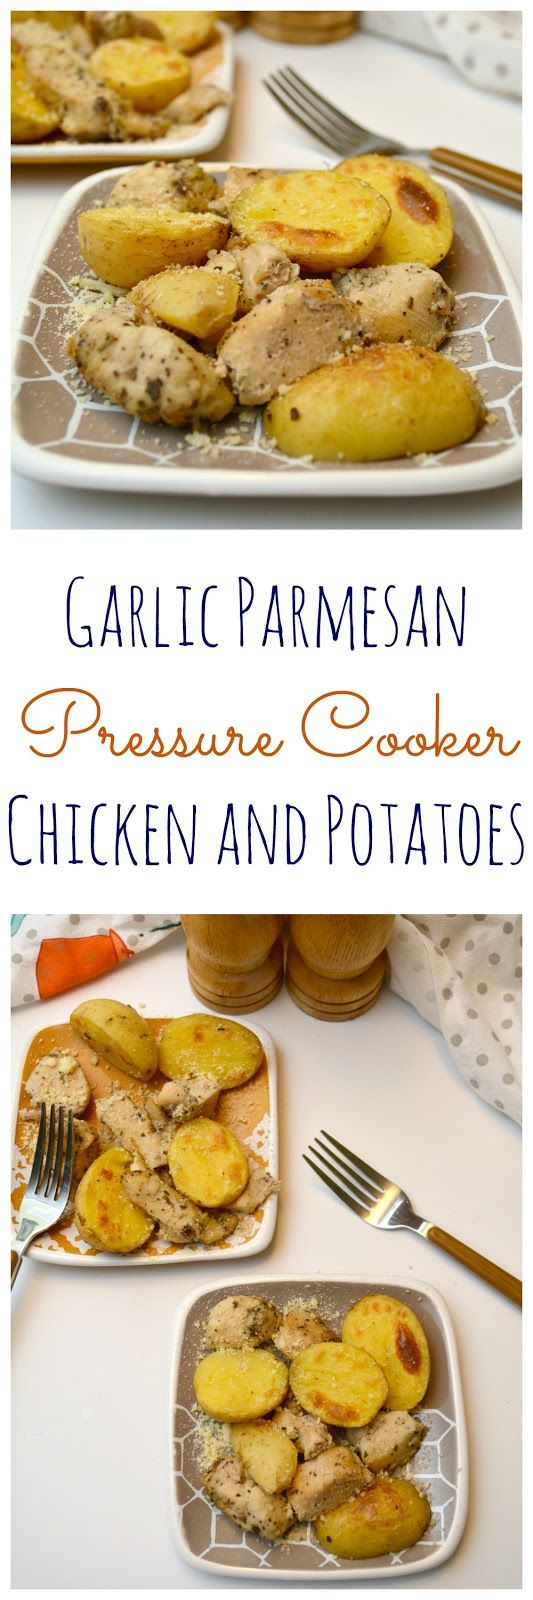 Mouthwatering pressure cooker recipe for Garlic Parmesan Chicken and Potatoes.